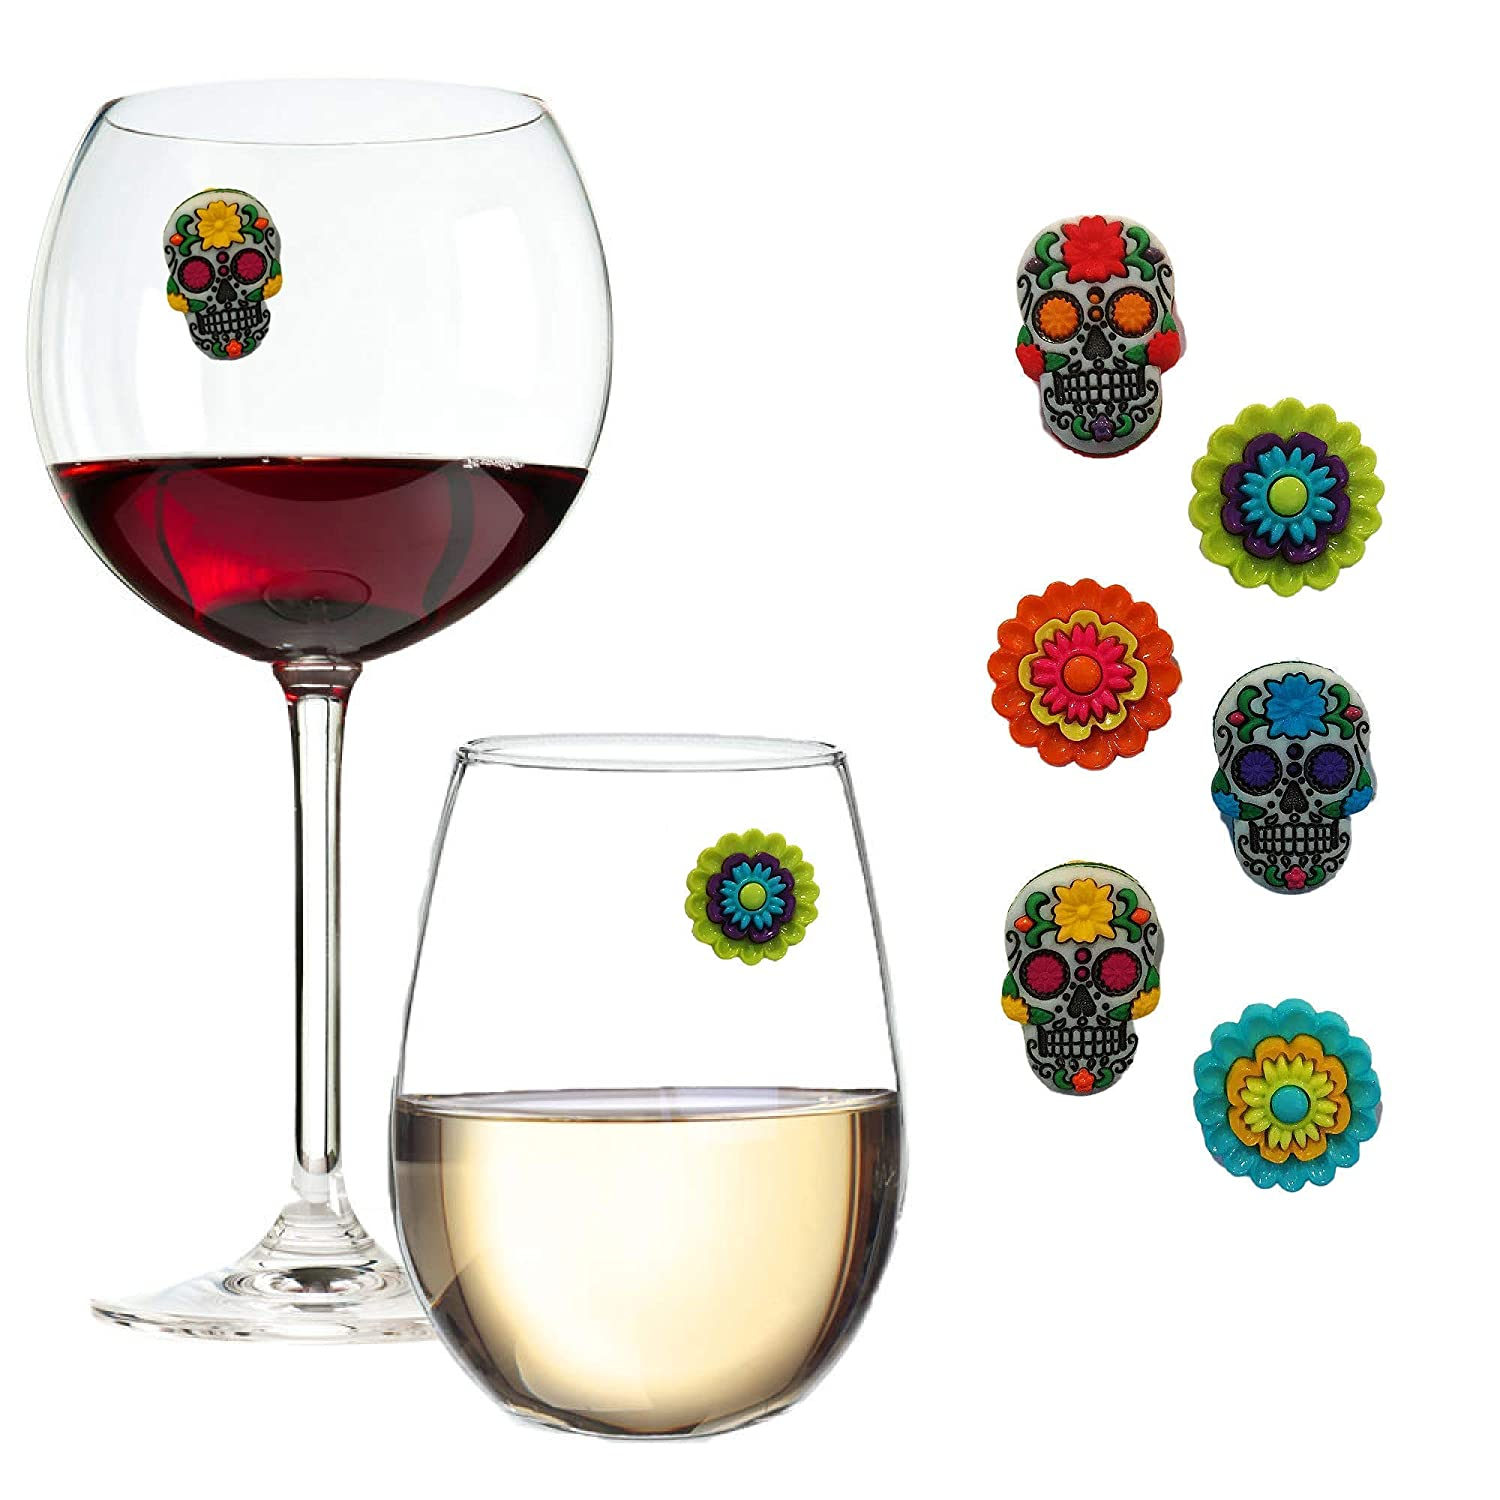 Sugar 2021 model Skull Wine Glass Charms for Halloween Max 66% OFF of Fiestas or - Set